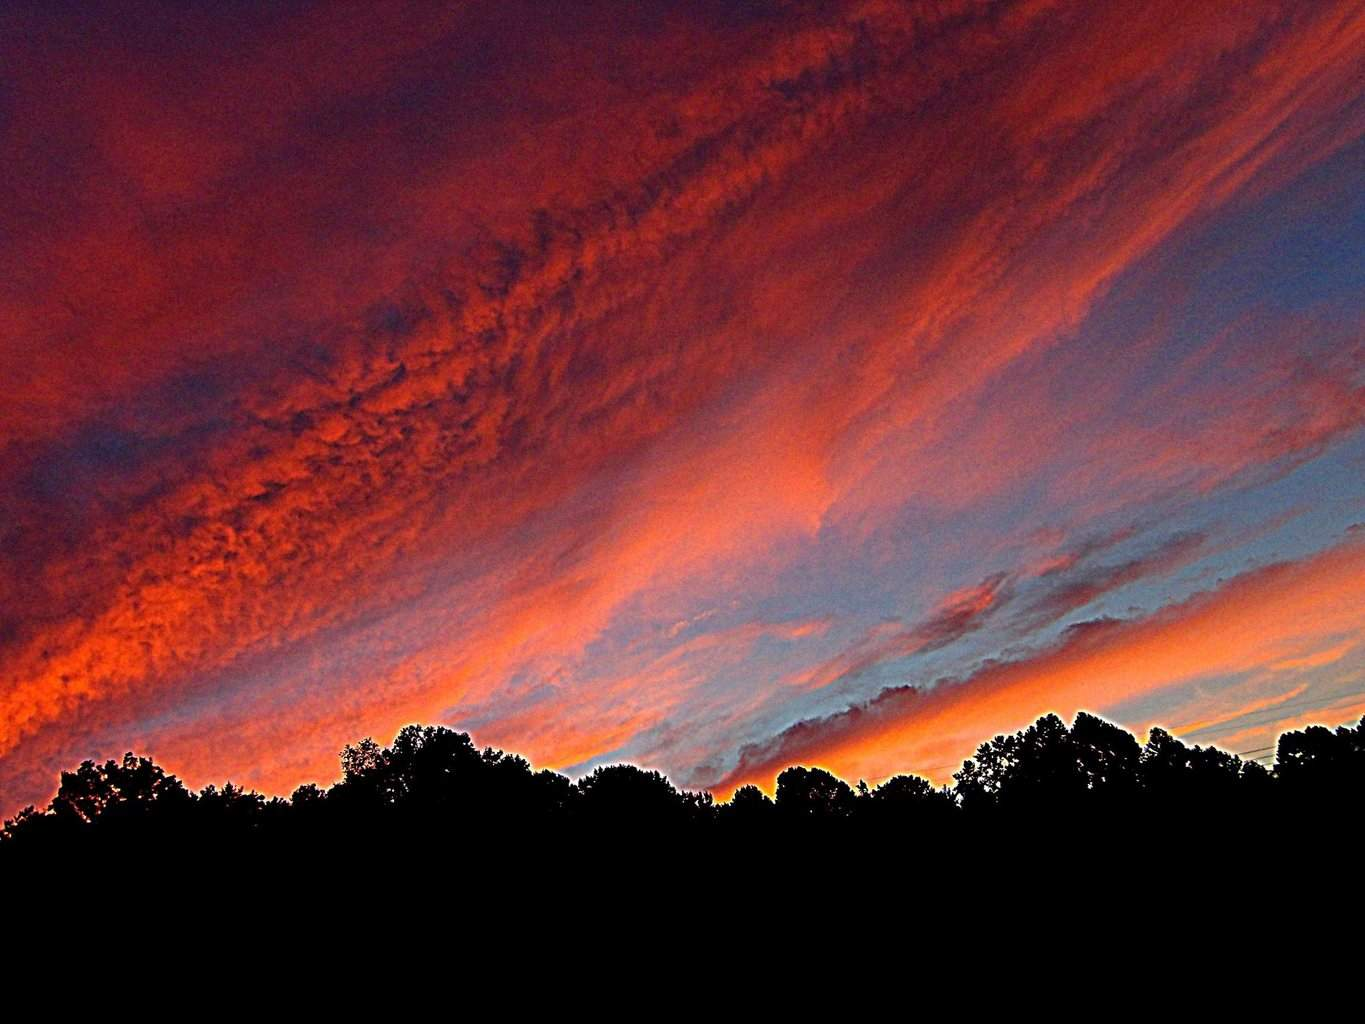 Evening sky in Southern Indiana was colorful this evening =]